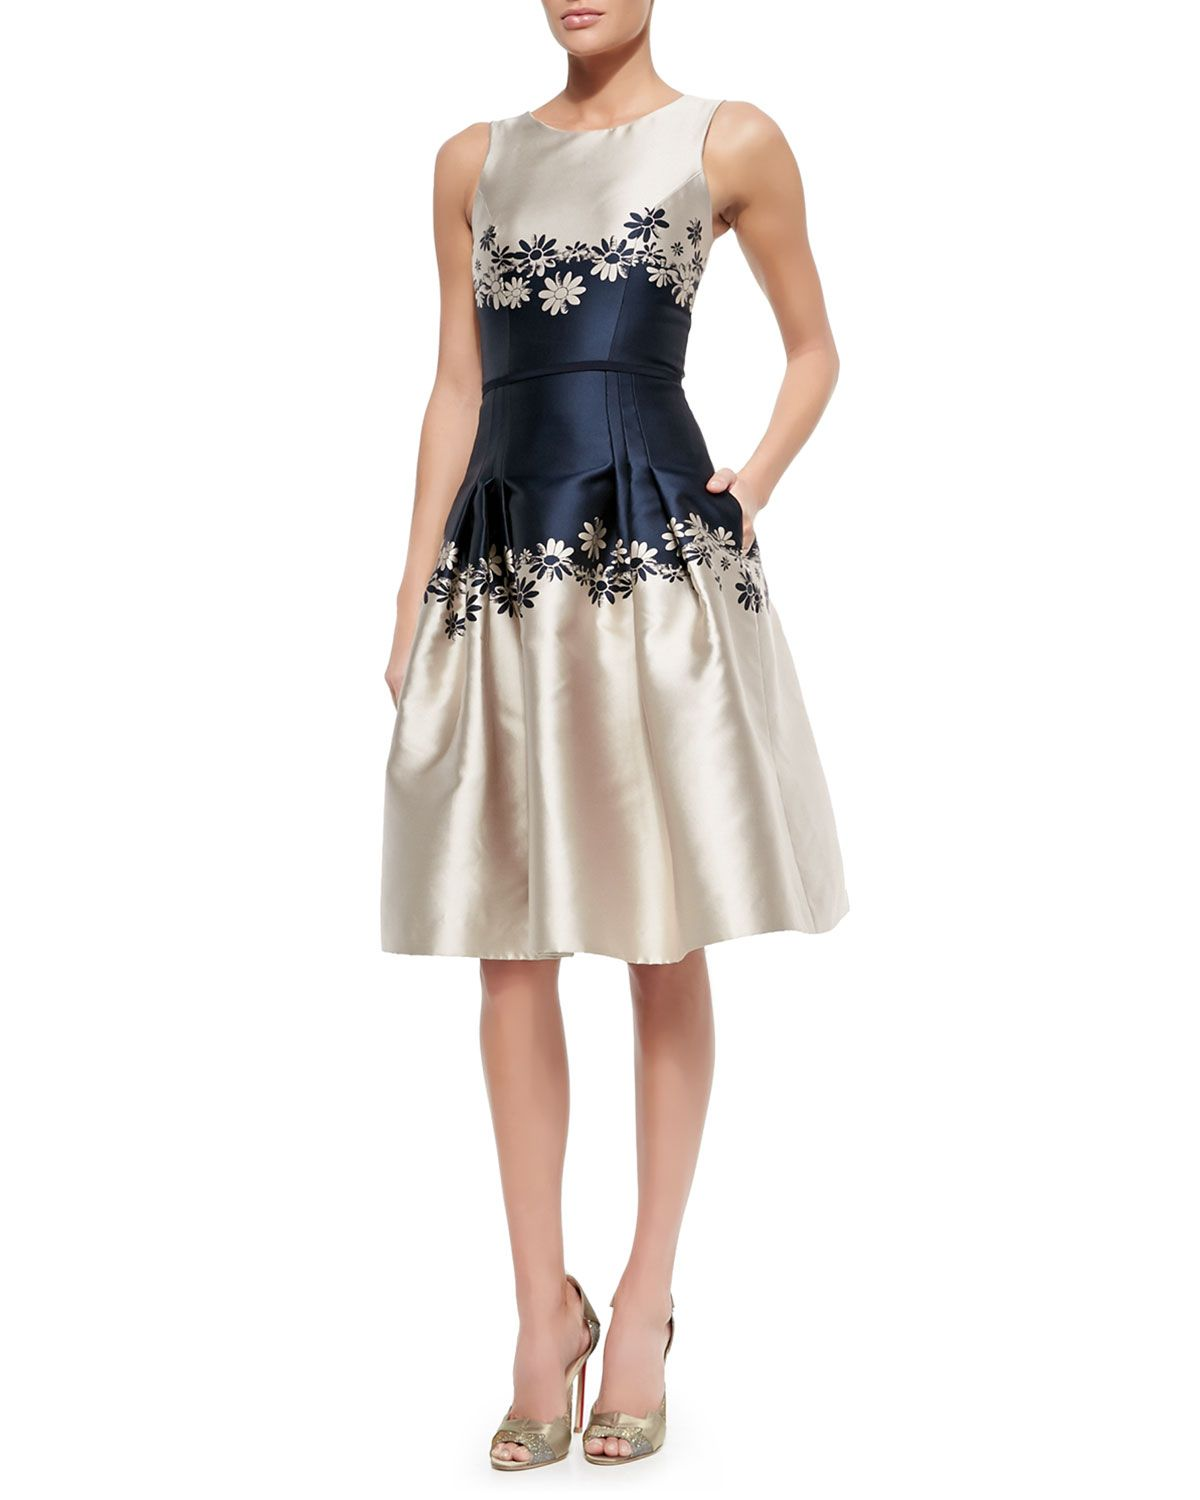 Carolina Herrera Sleeveless Two-Tone Dress W/ Daisies | Dresses ...